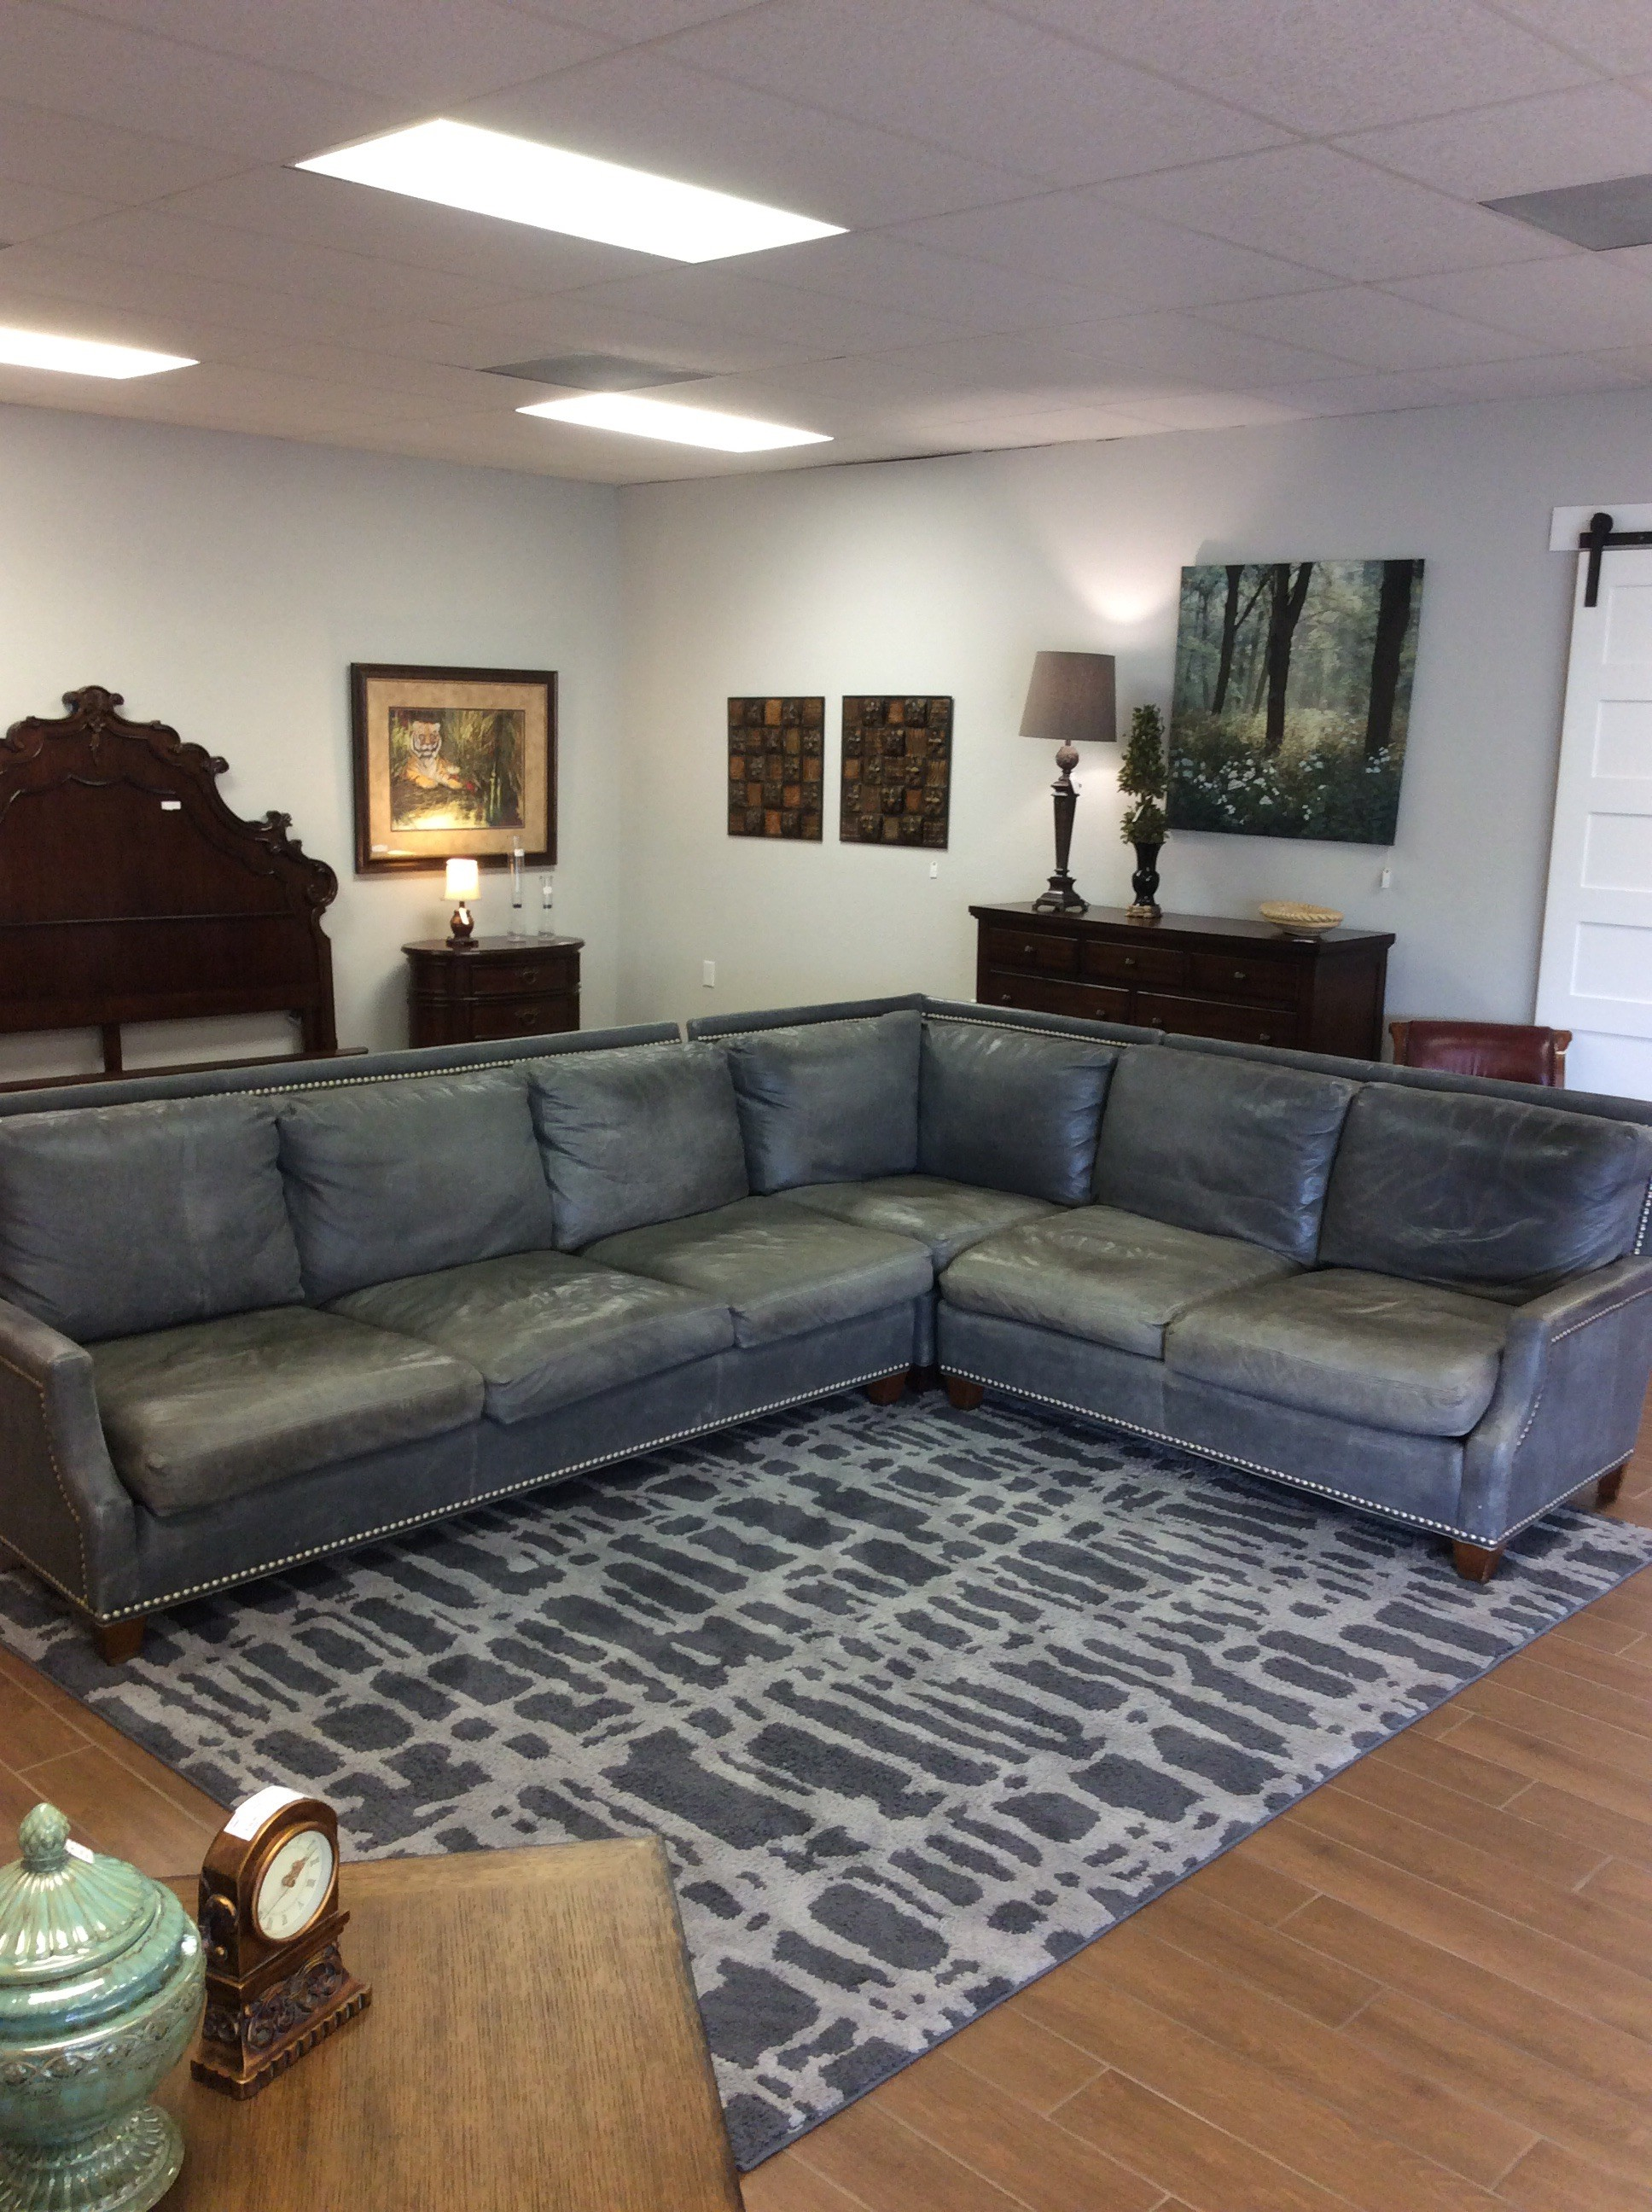 BARGAIN ALERT!!!! This enormous 3-piece SHERRILL leather sectional is in fair condition. The leather has many worn and faded areas, hence the low price. The seat cushions are all removable, while the back cushions are not. There are nailhead accents, as well. Priced to move at only $595!